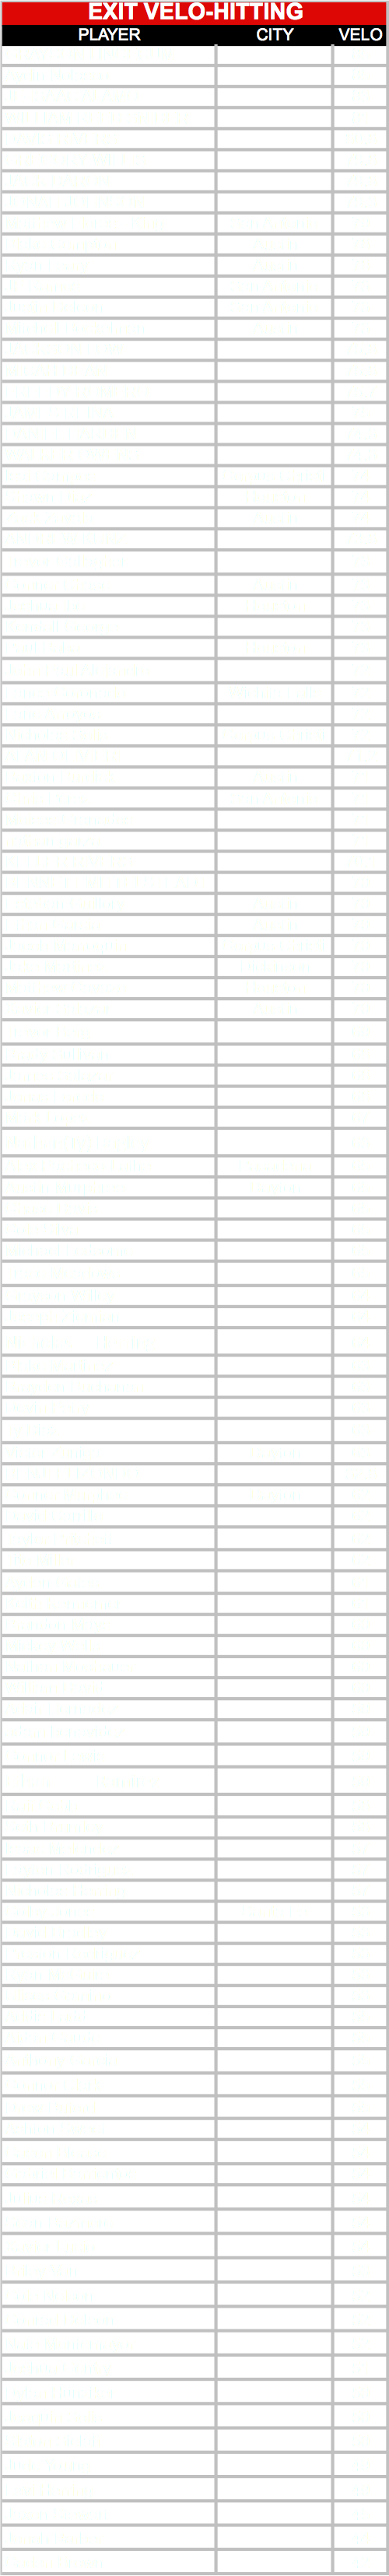 2023 exit velo 6-13-19.png